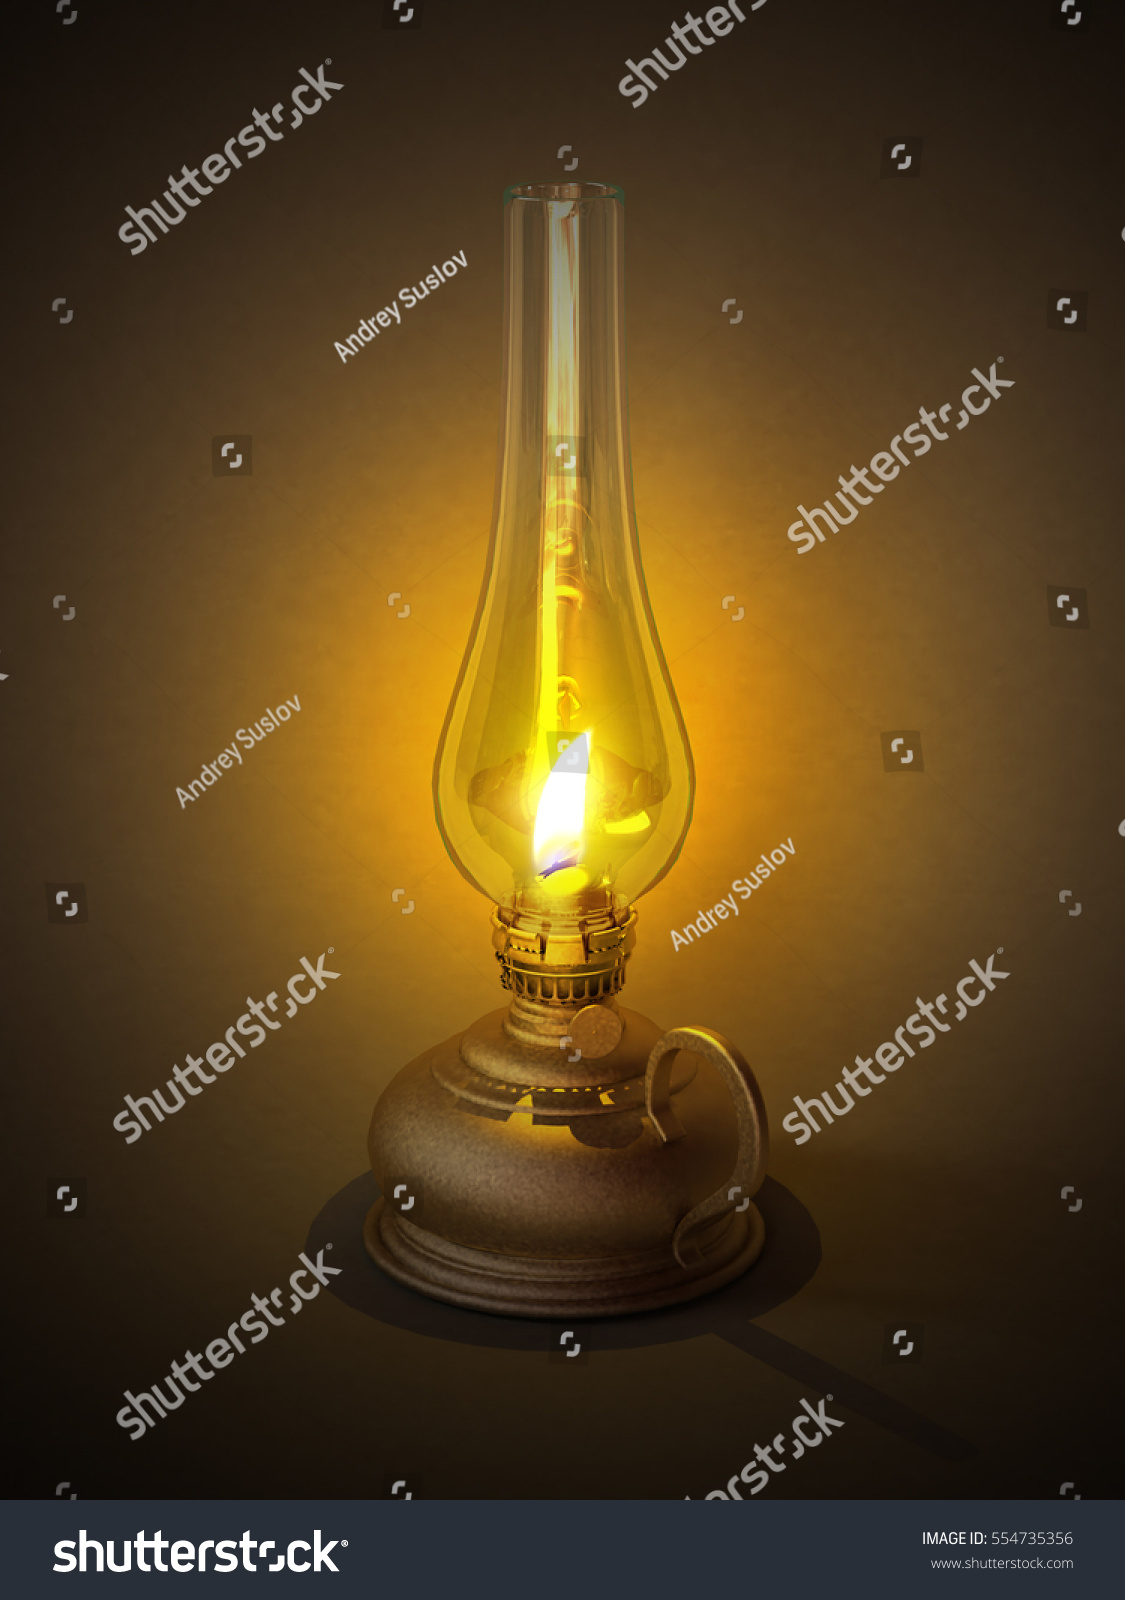 Diy Kerosene Lamp Old Vintage Oil Kerosene Lamp Isolated Stock Illustration